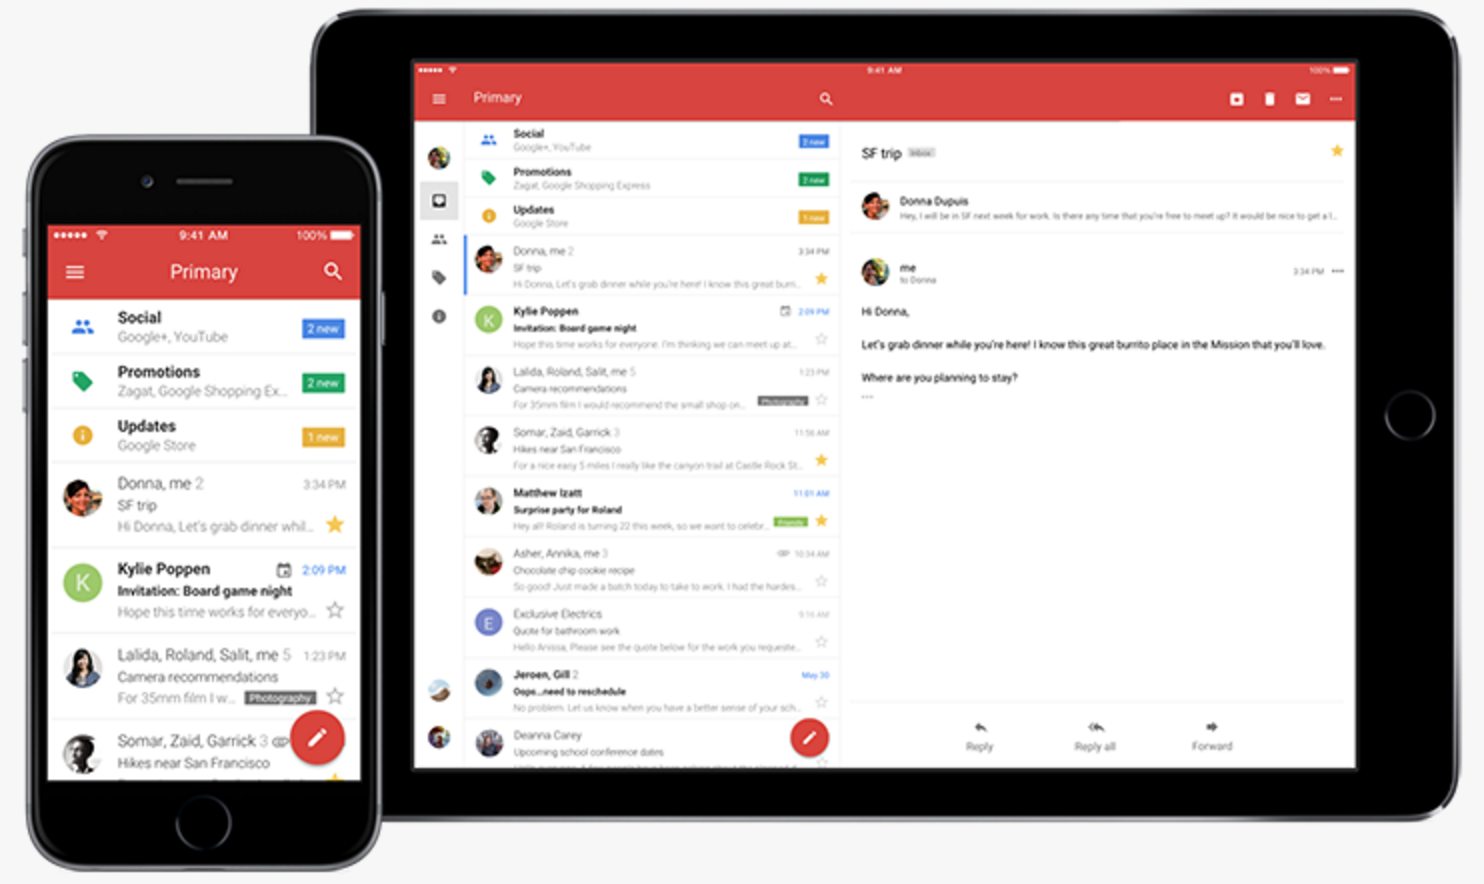 Gmail theme changes on its own